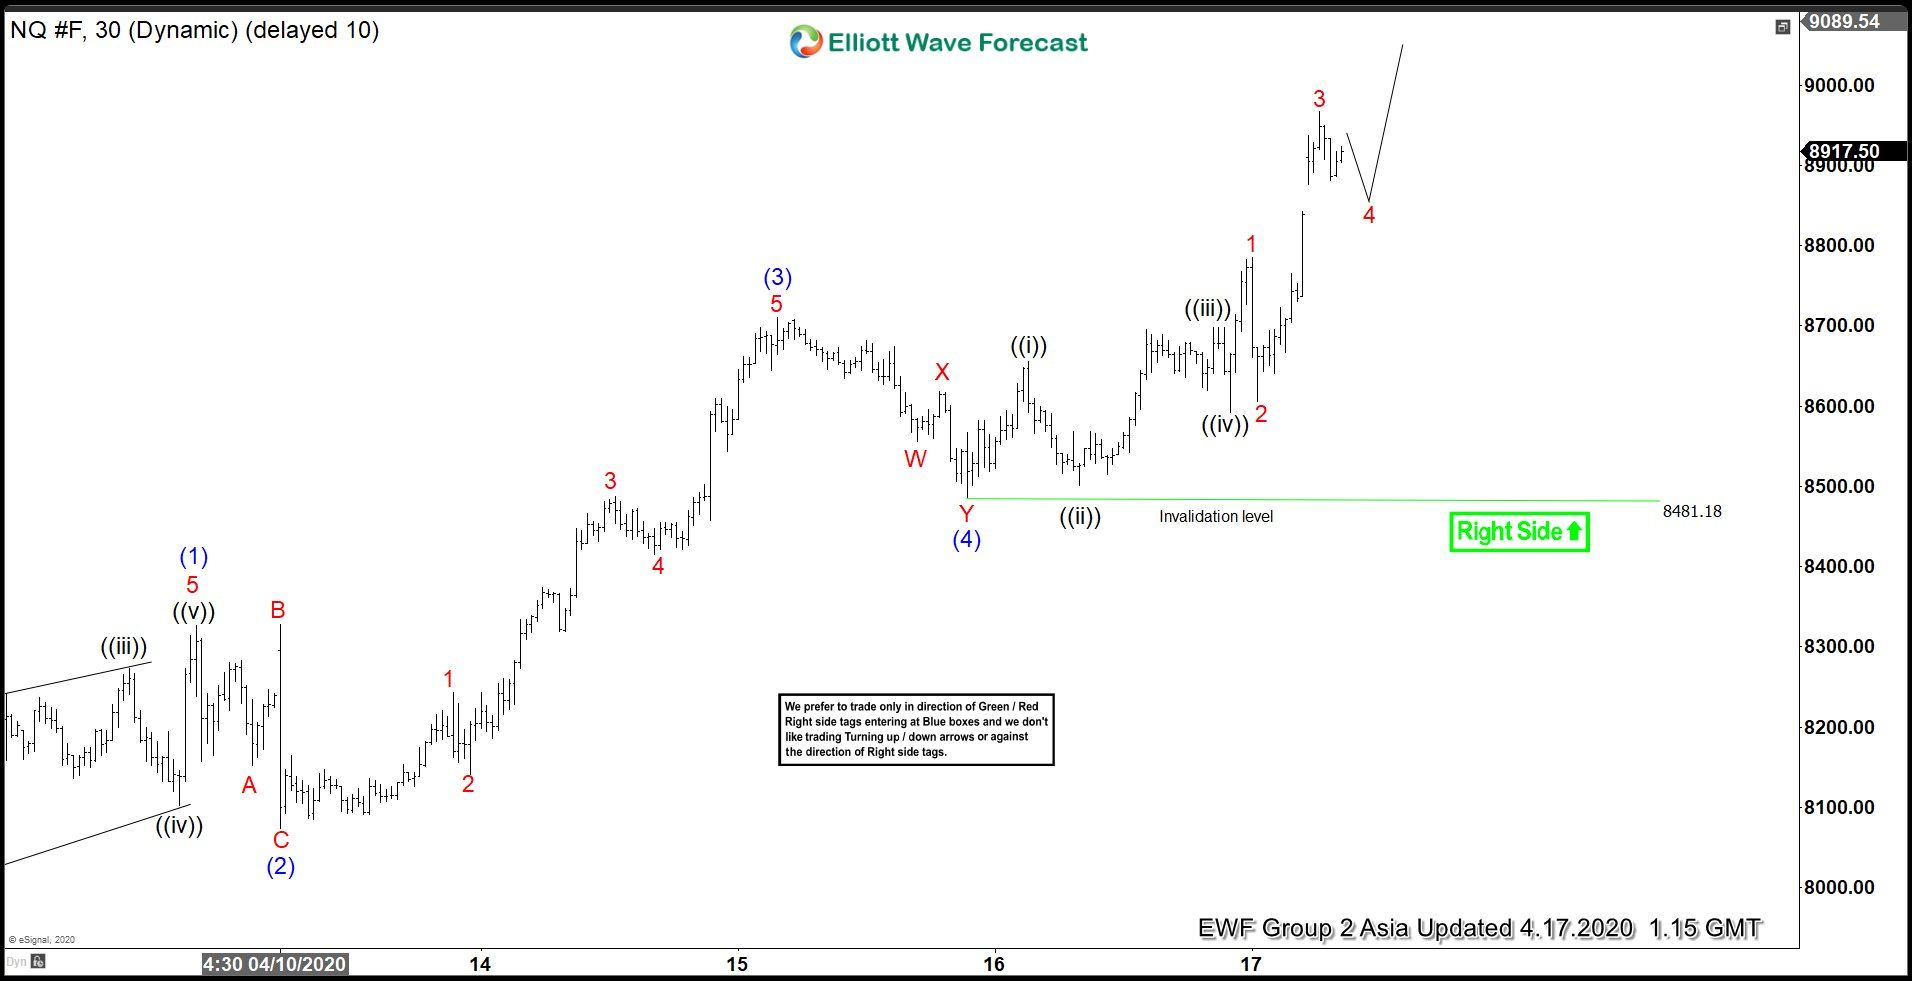 Elliott Wave View: Impulsive Rally in Nasdaq Favors Upside